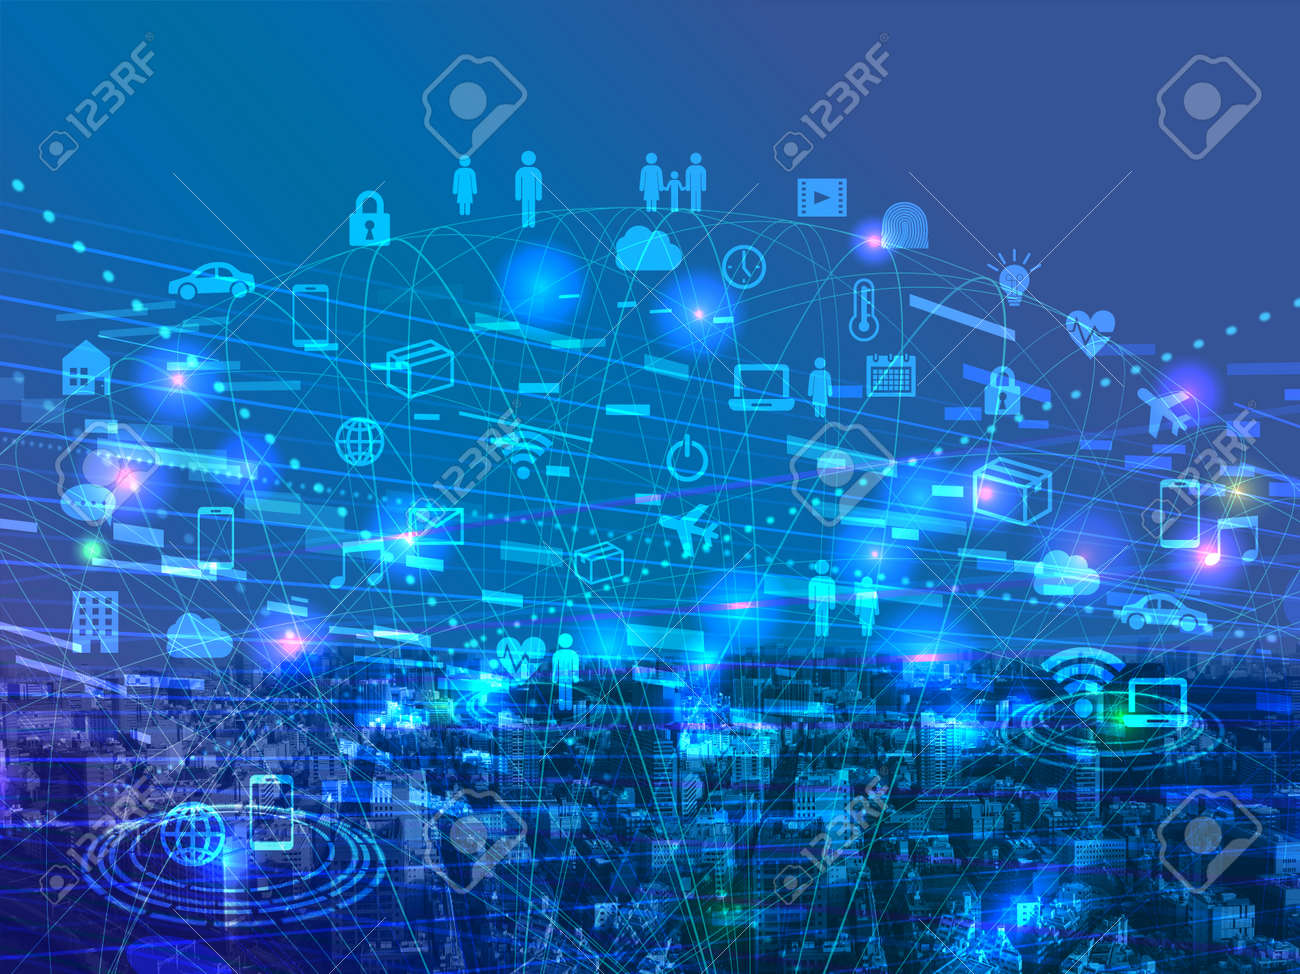 Digital network-blue cyberspace icon image - 134924752